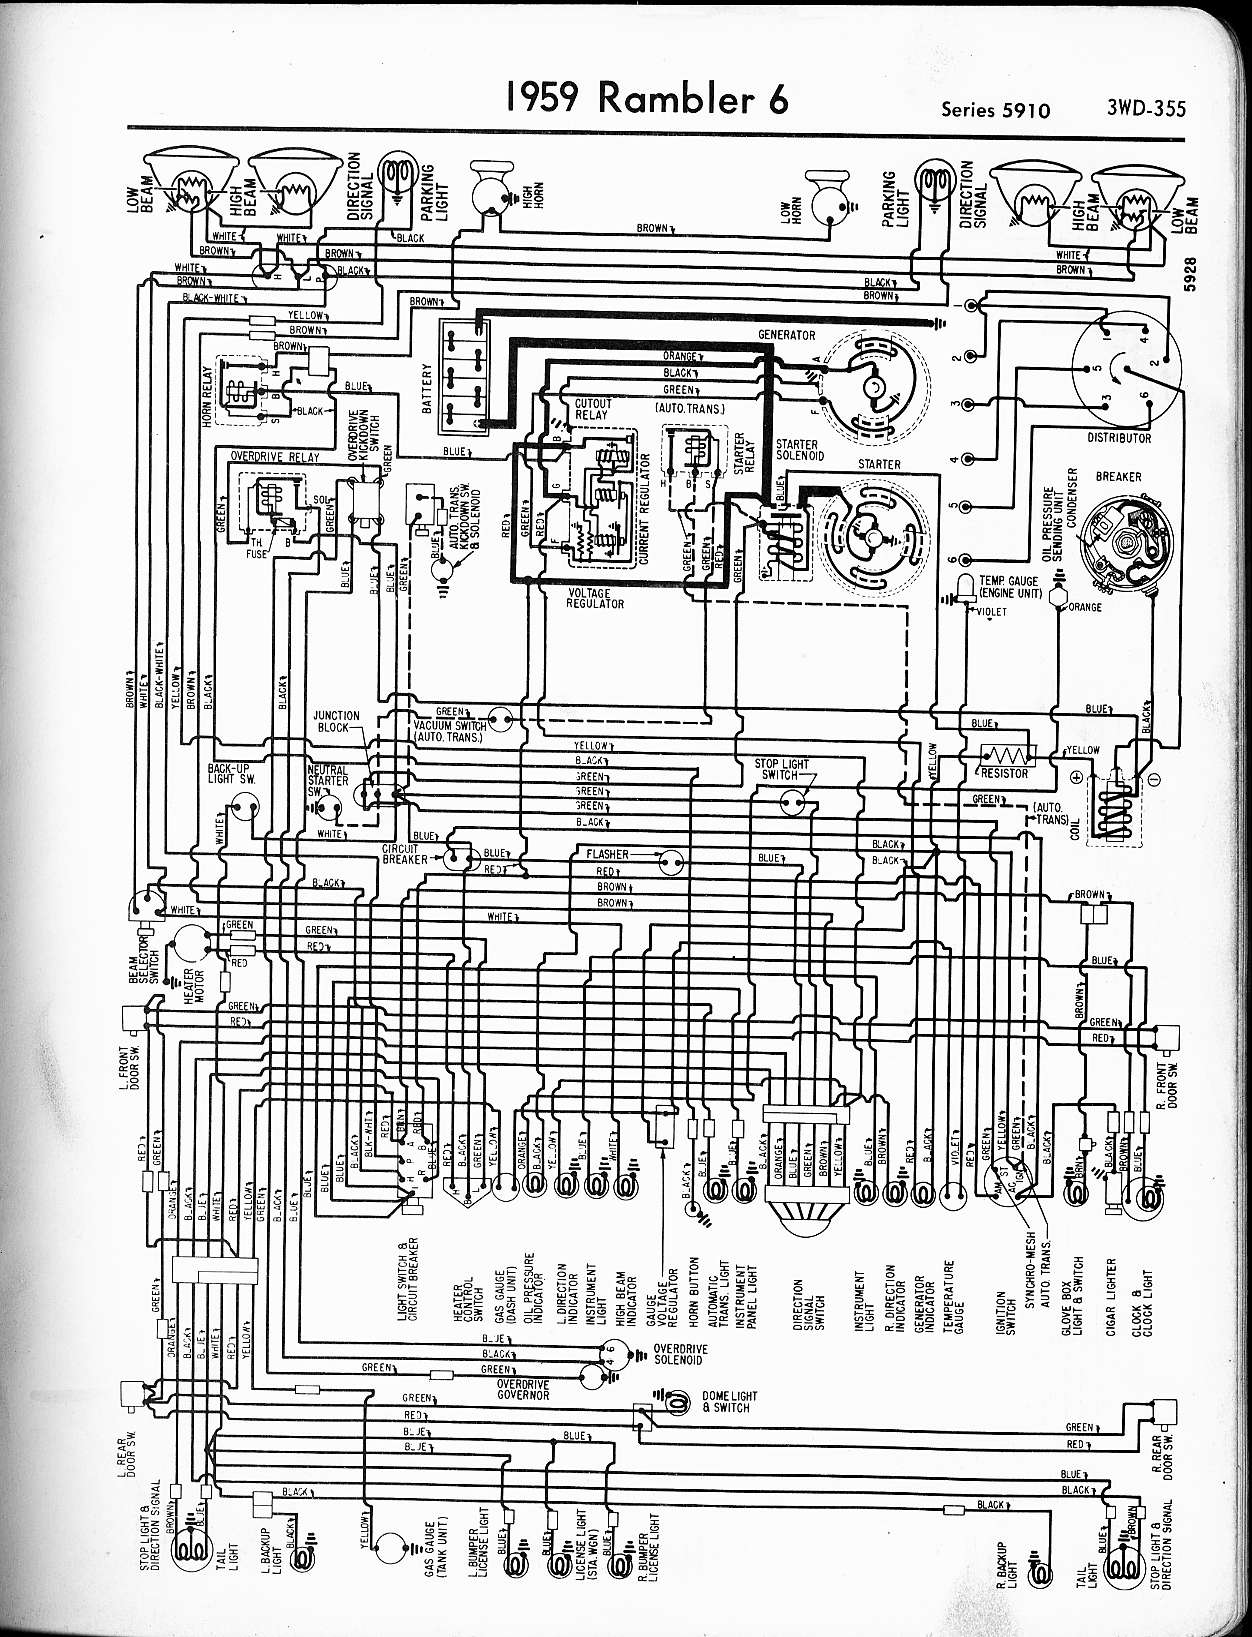 Rambler Wiring Diagrams The Old Car Manual Project 1946 Chevy 1 5 Ton Truck Diagram 1959 6 Series 5910